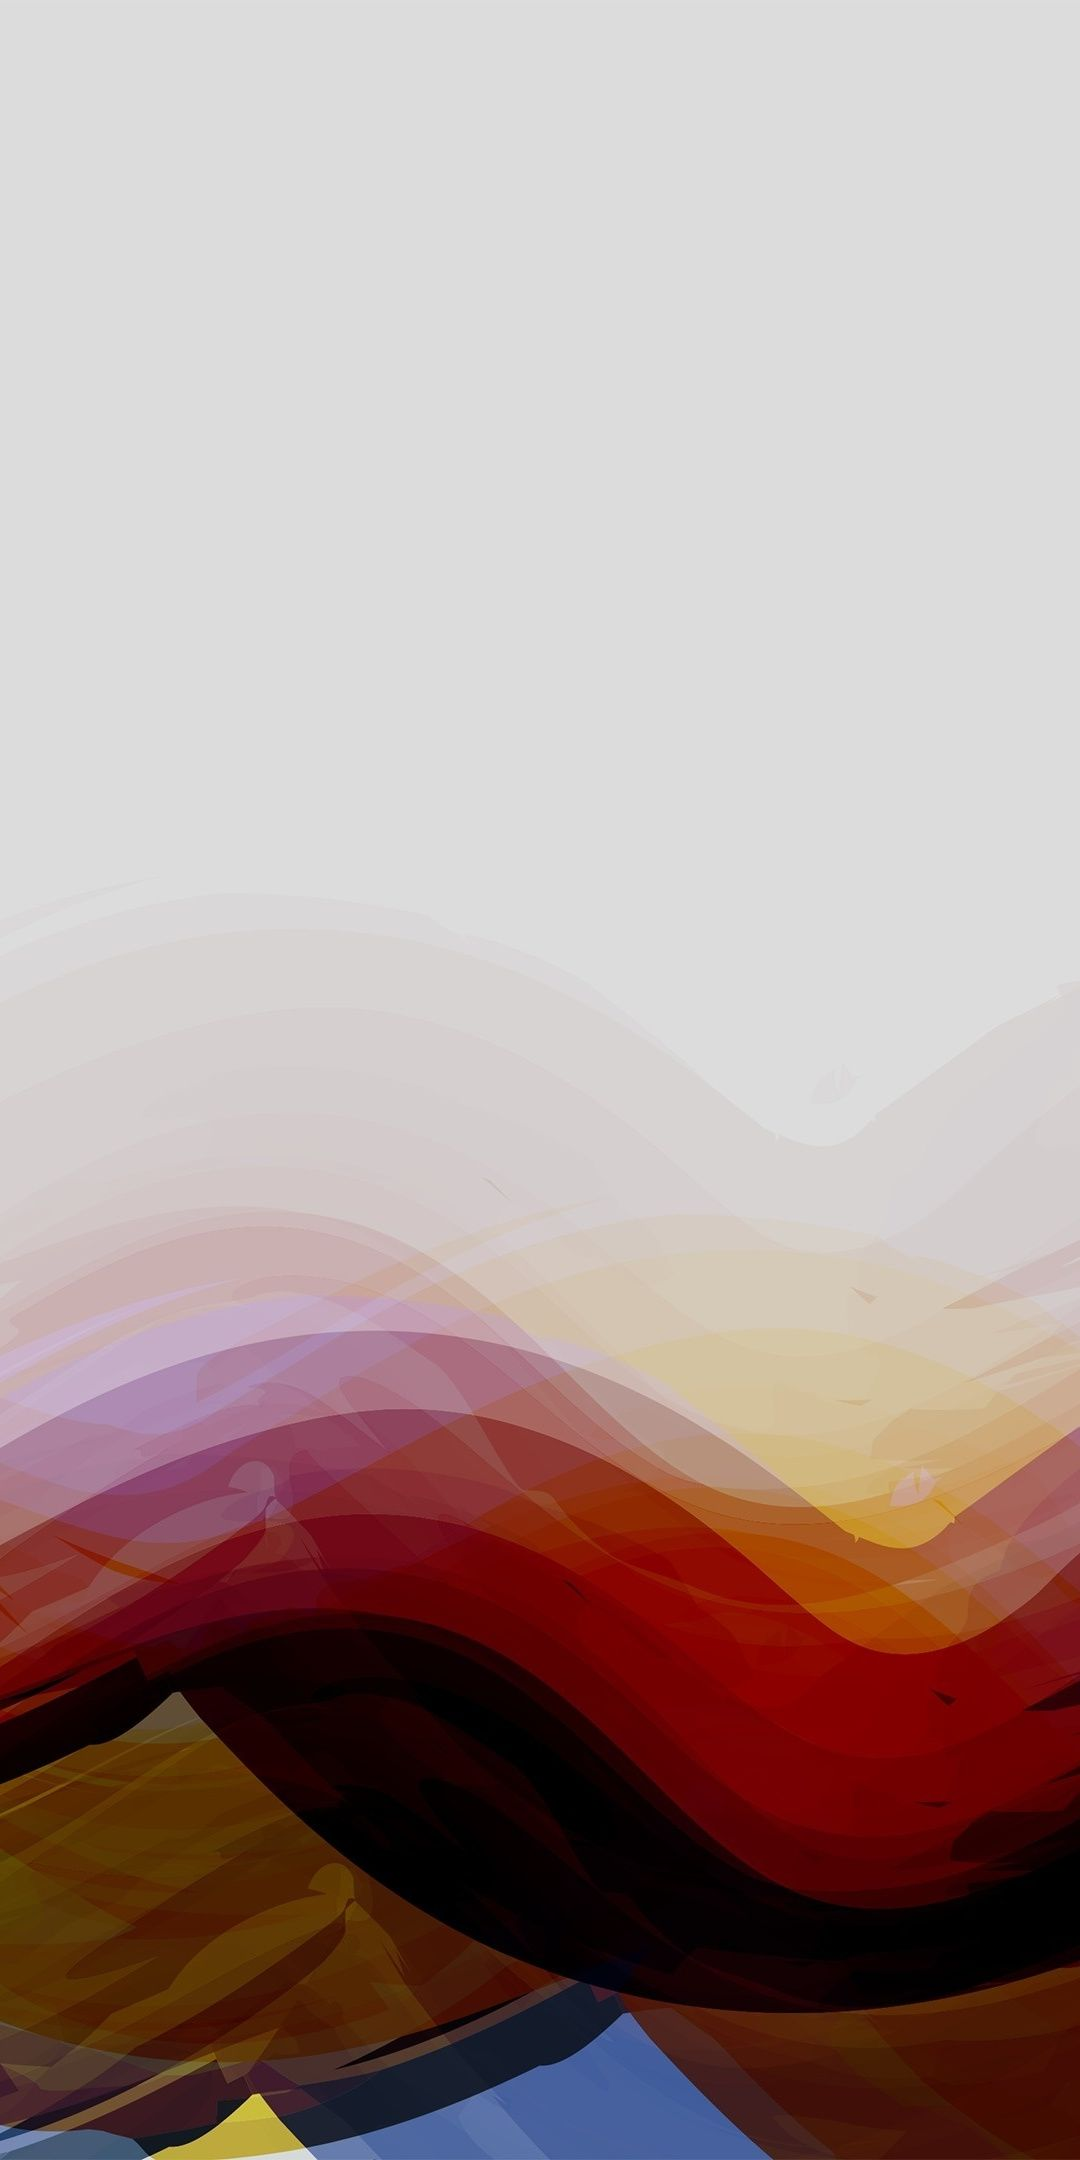 Waves of colors, abstract, multi-colors, artwork, 1080x2160 wallpaper